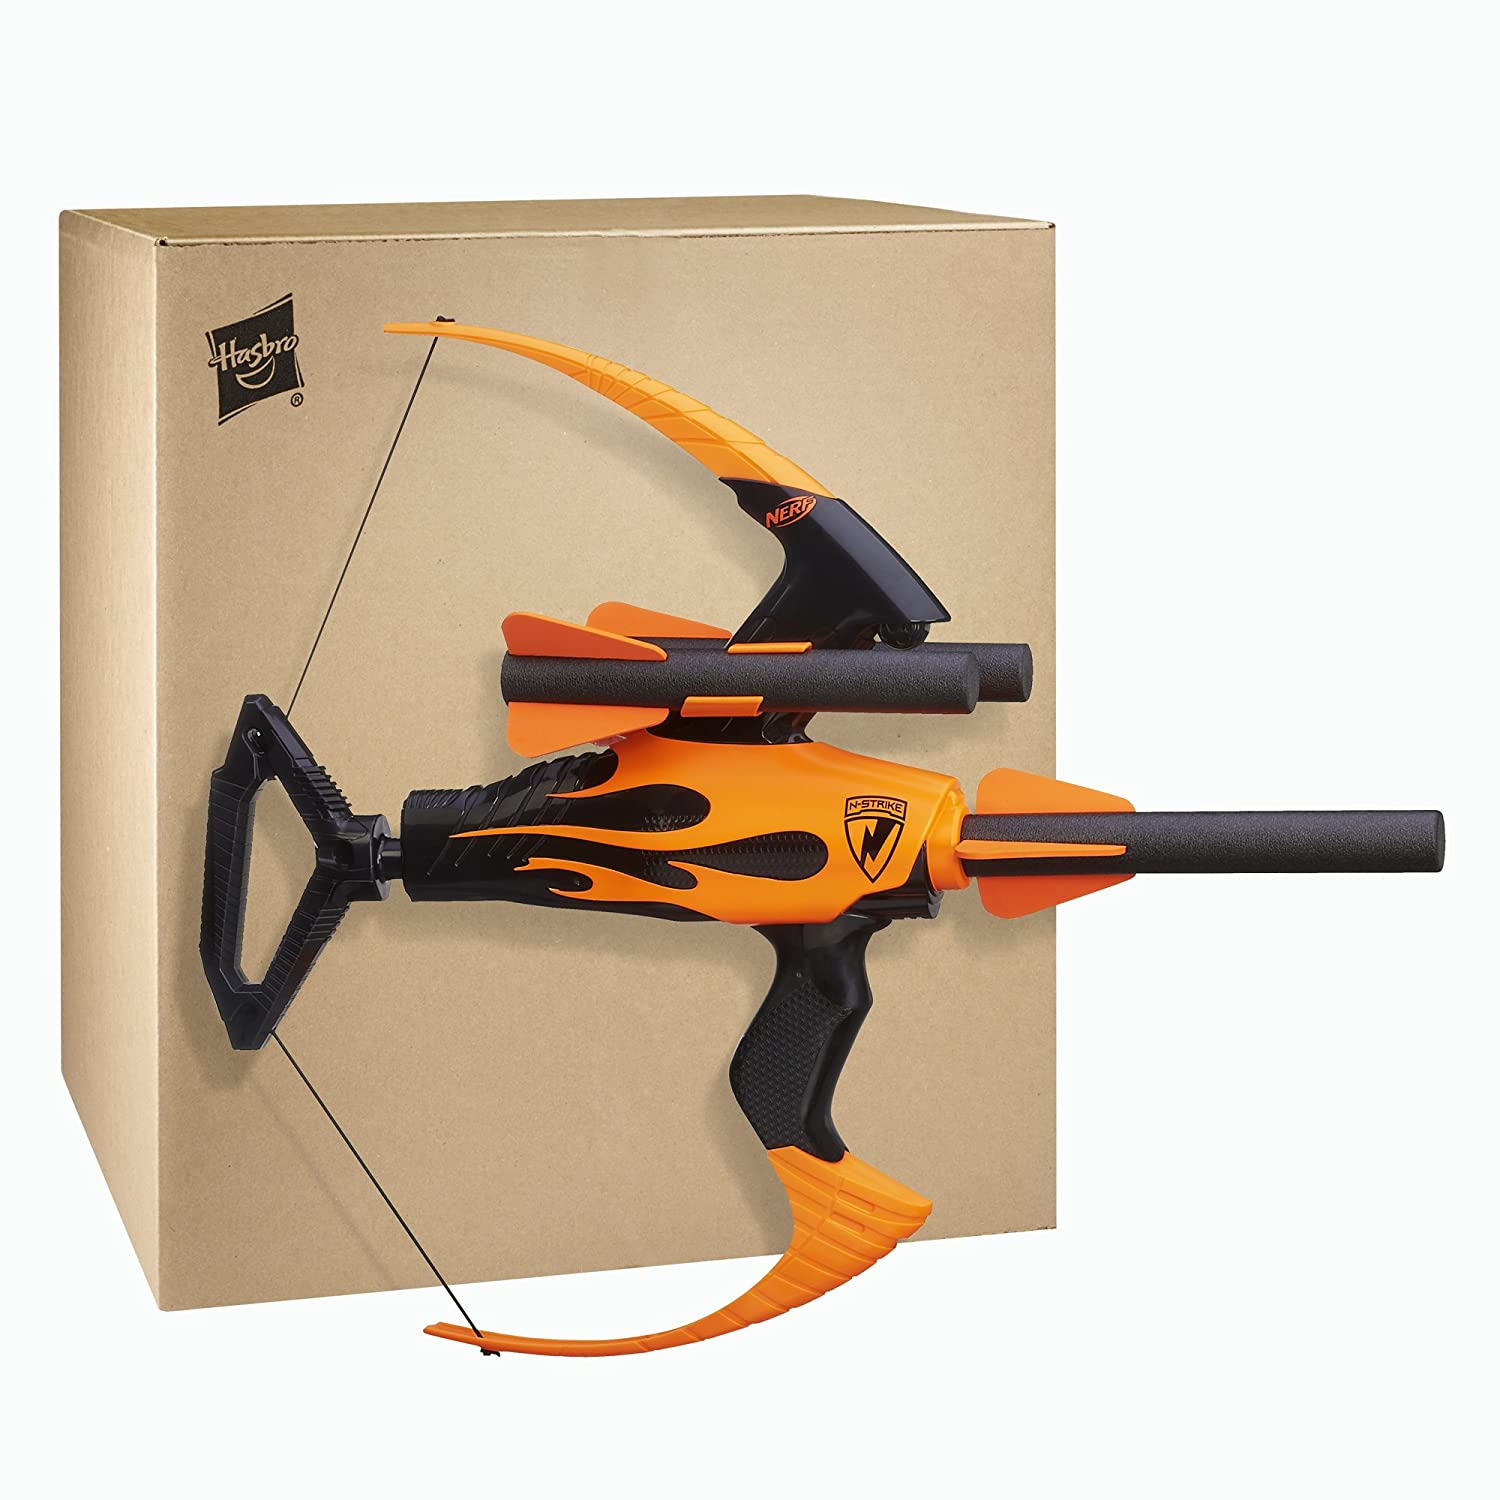 Buy Nerf N-Strike Blazin Bow Blaster Online at Low Prices in India -  Amazon.in